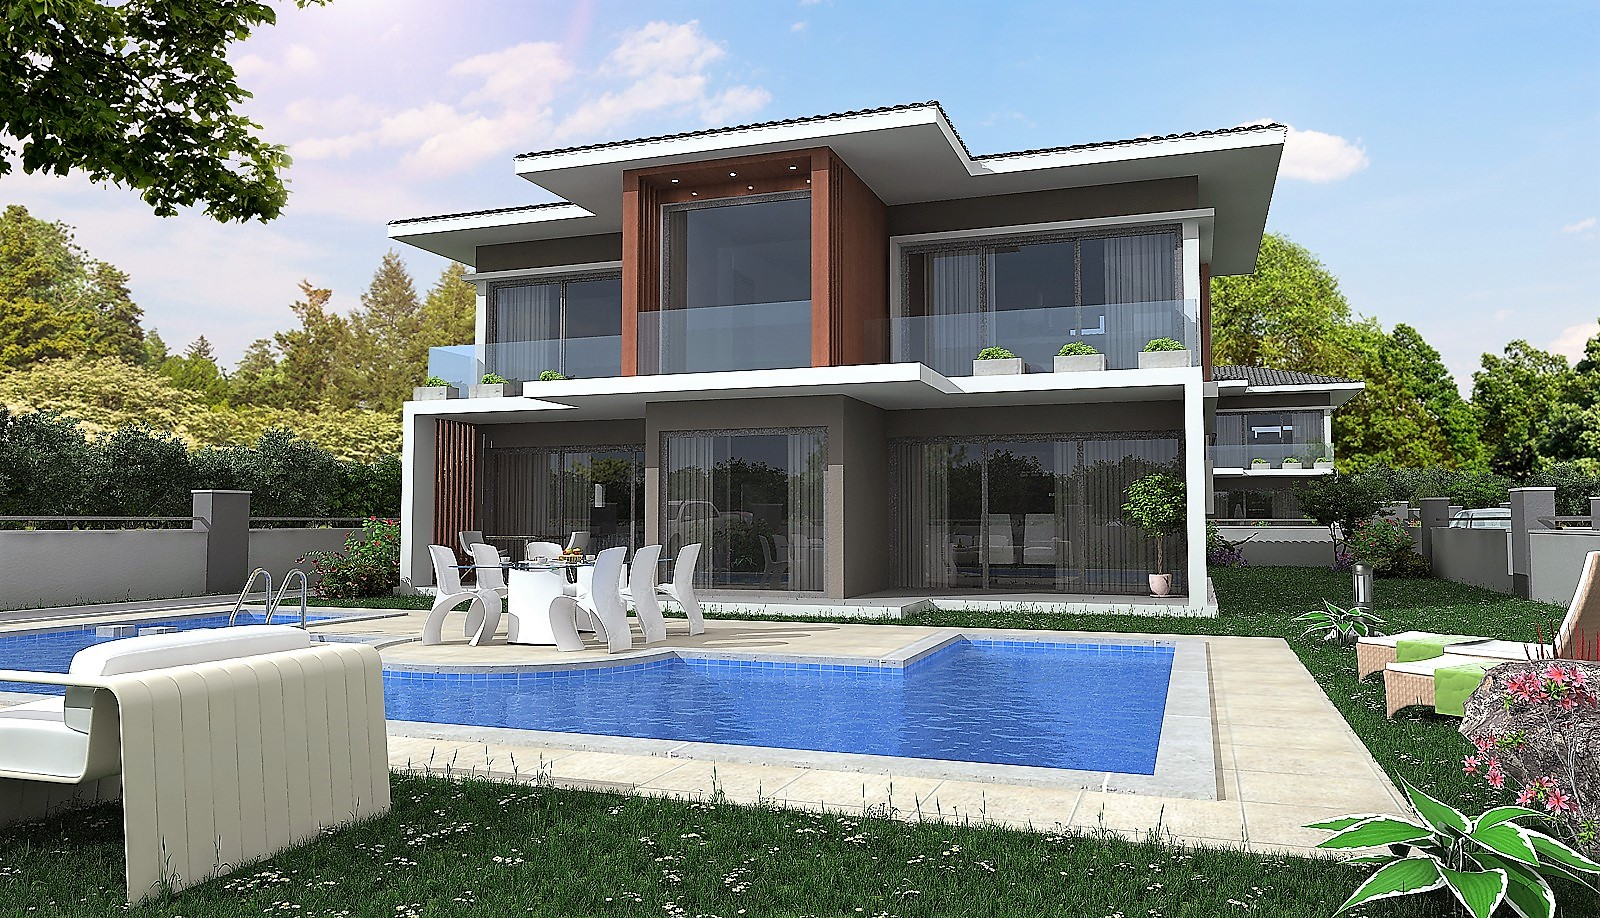 4 Bedroom Detached Villas with Swimming Pool For Sale